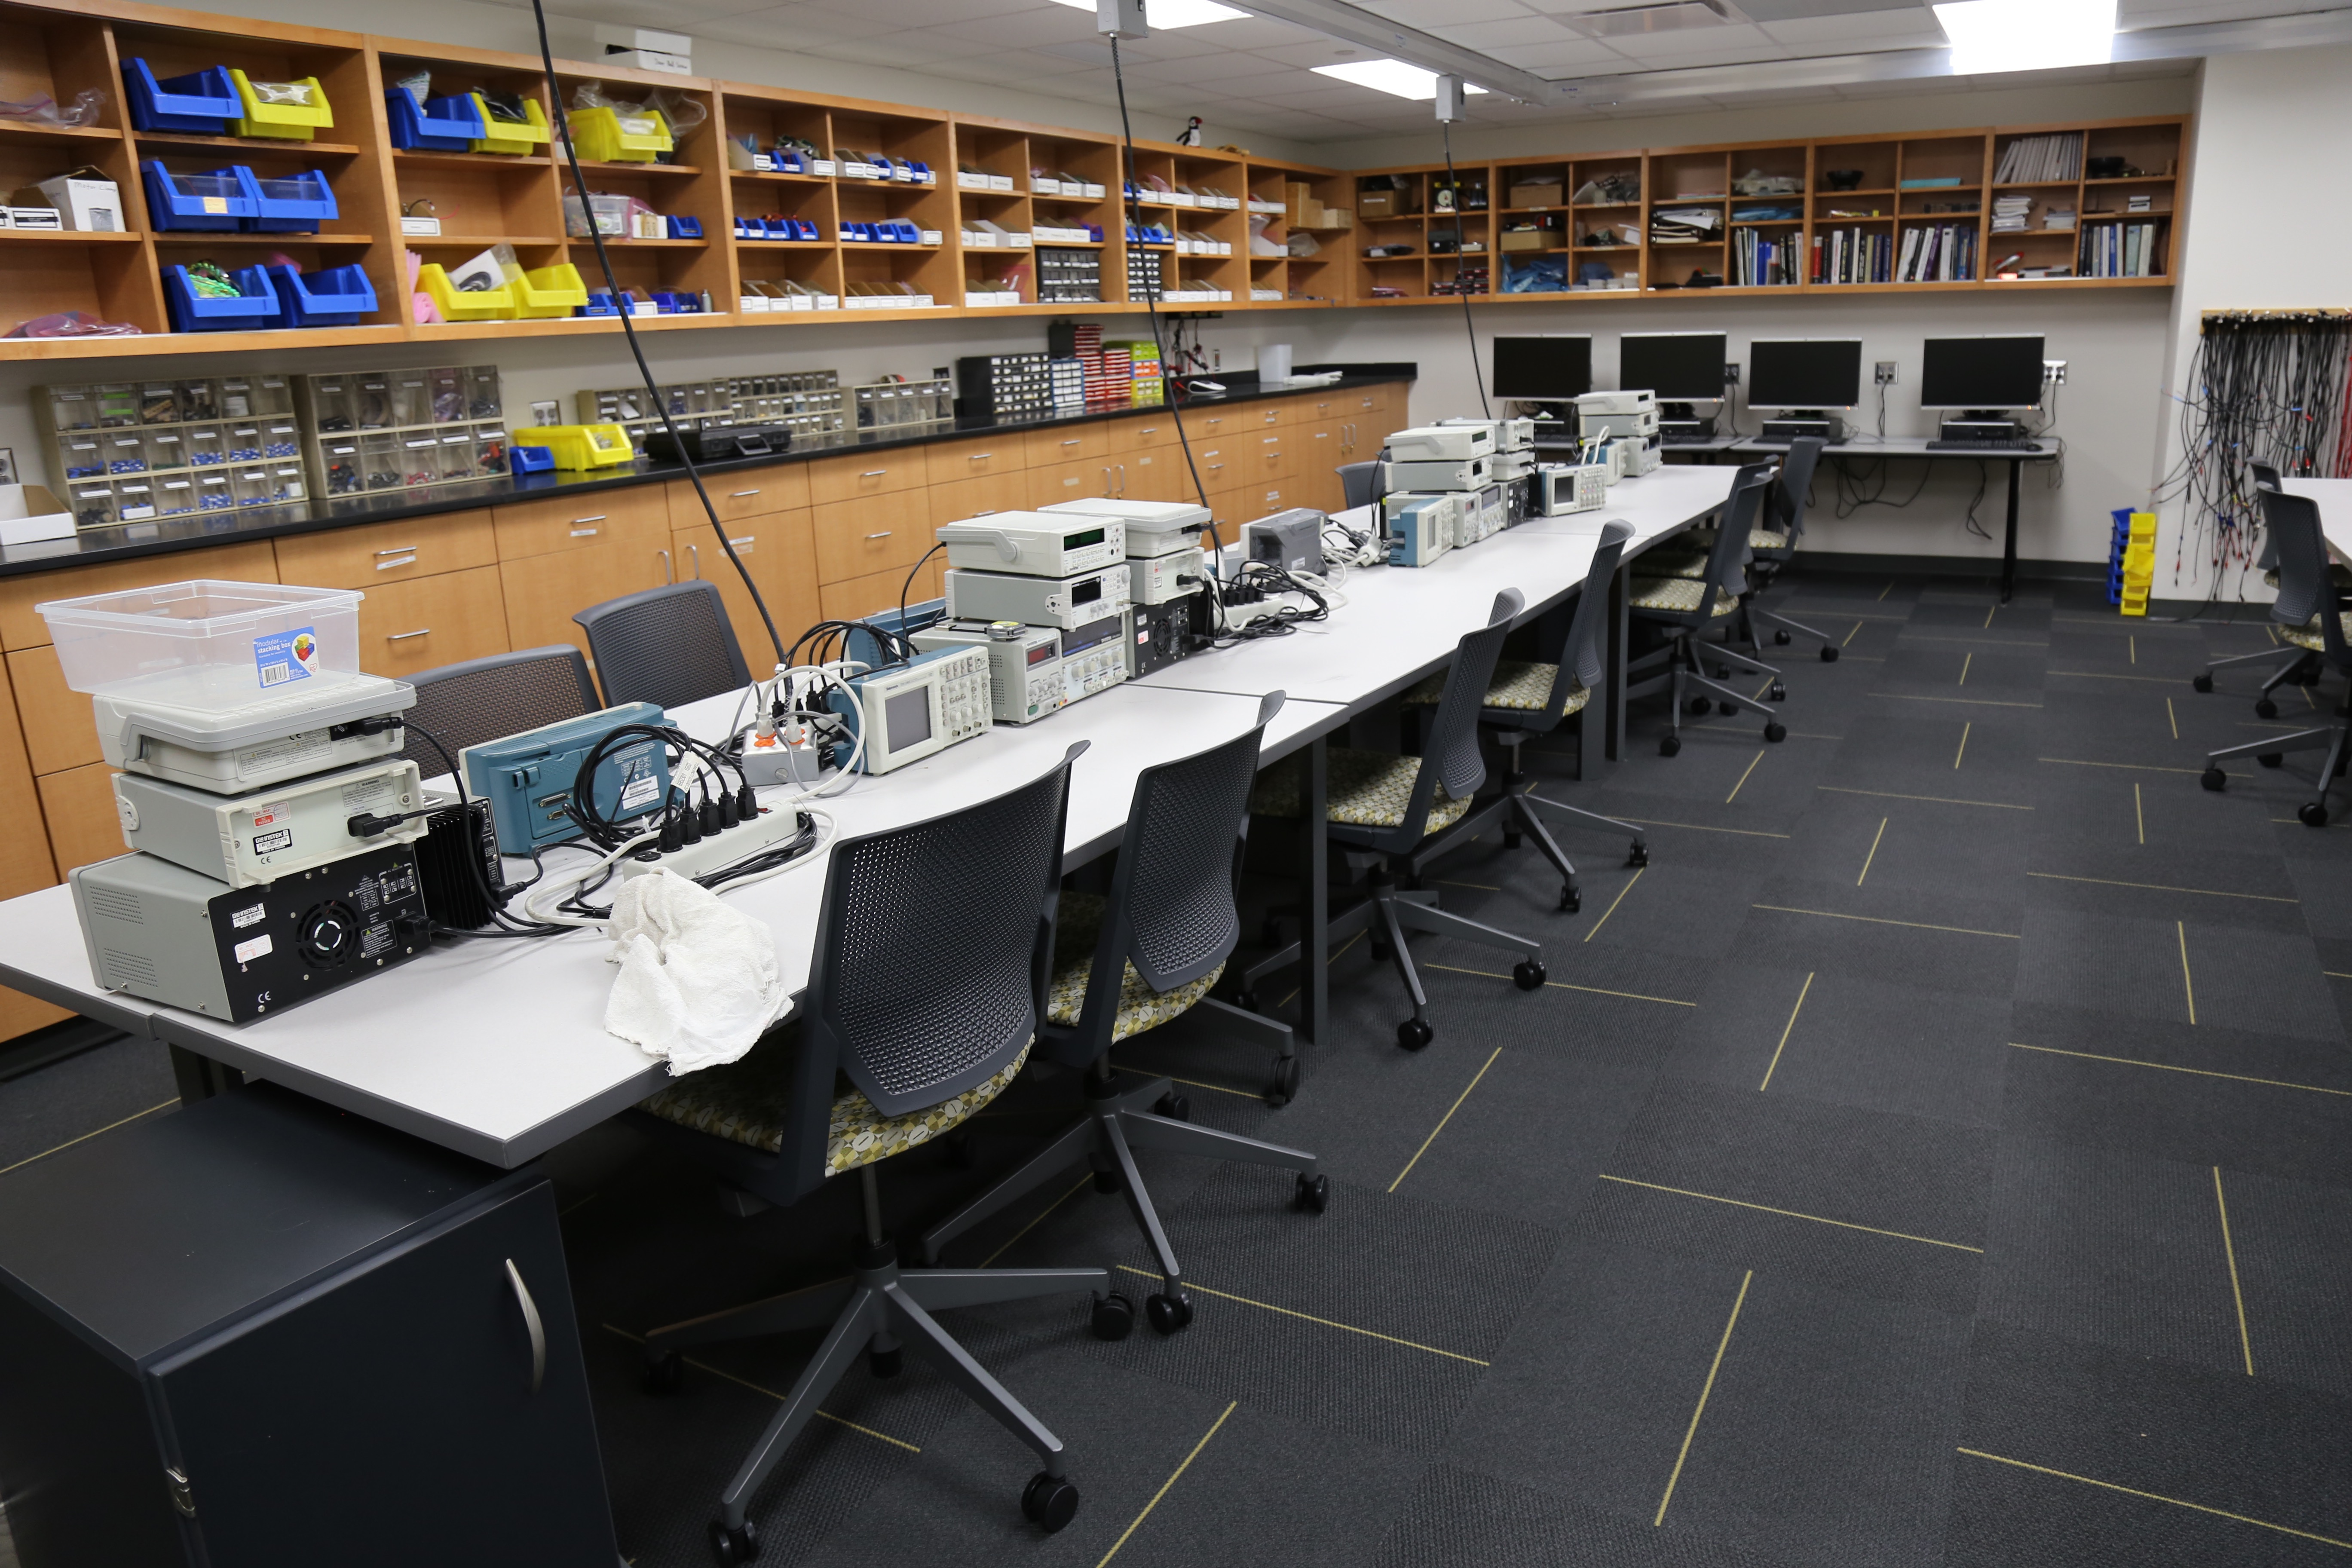 Image of FabLab work stations.